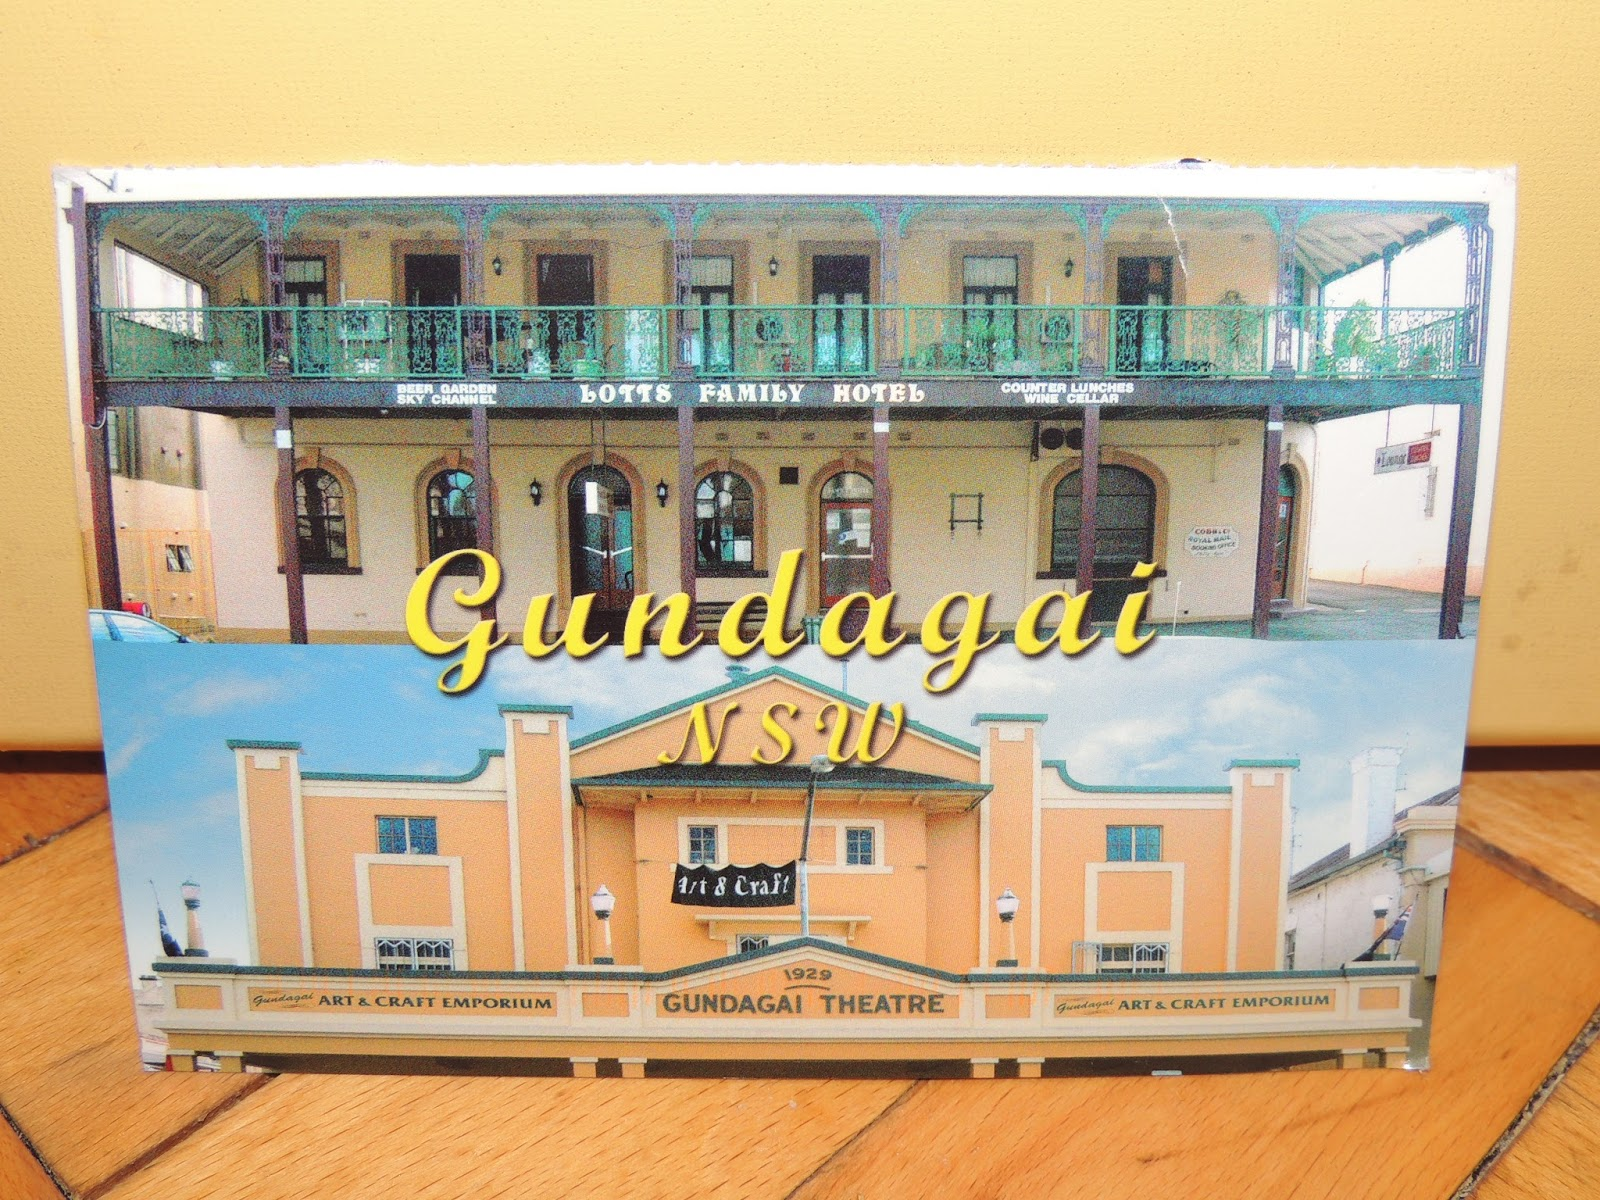 Postcard from Gundagai, Australia – Diary of Difference